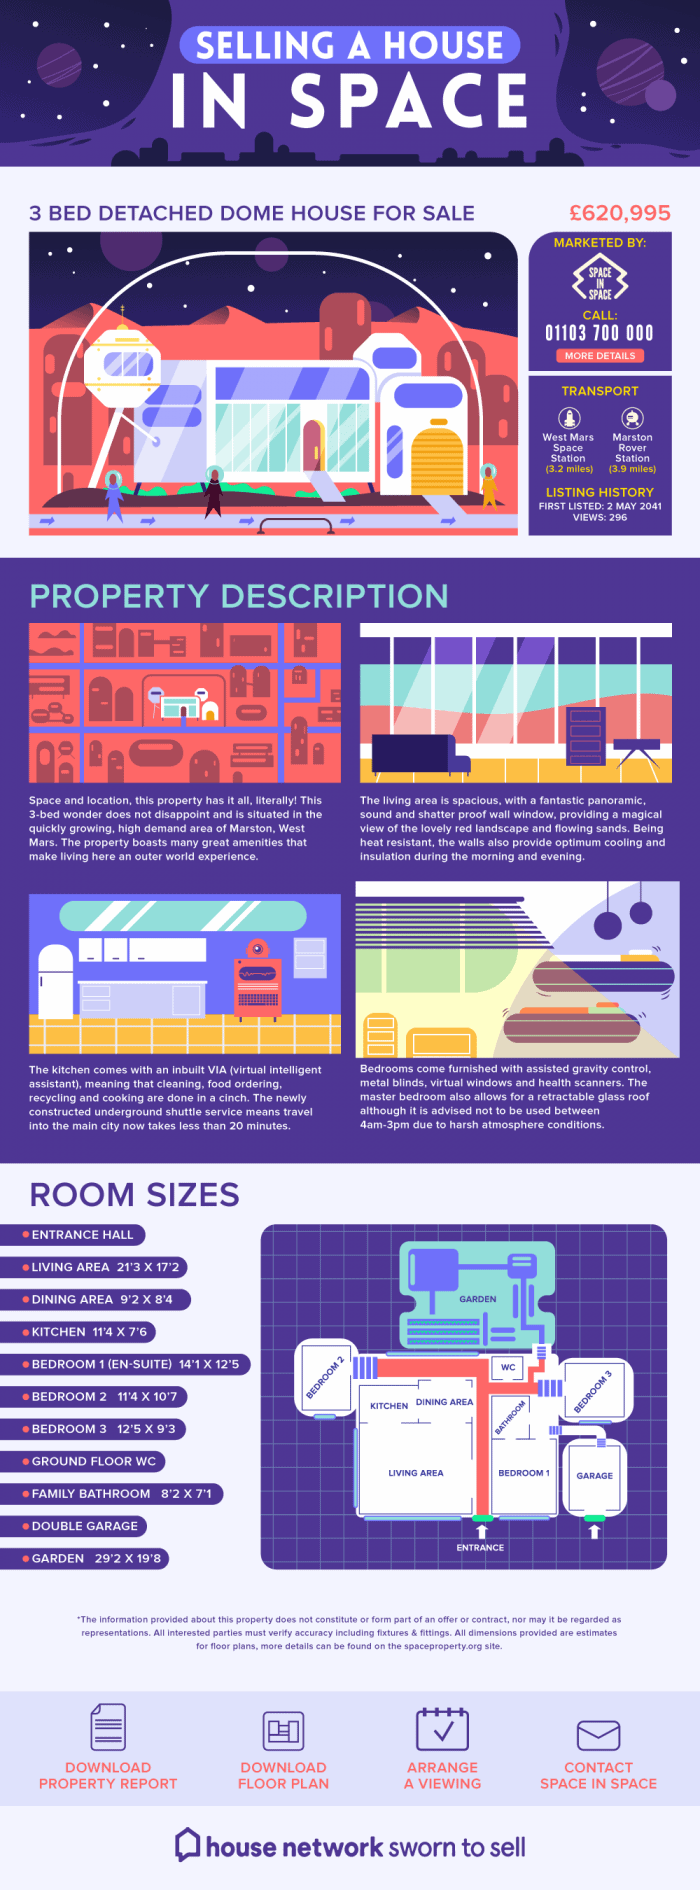 Humorous Infographic About Selling Homes in Space